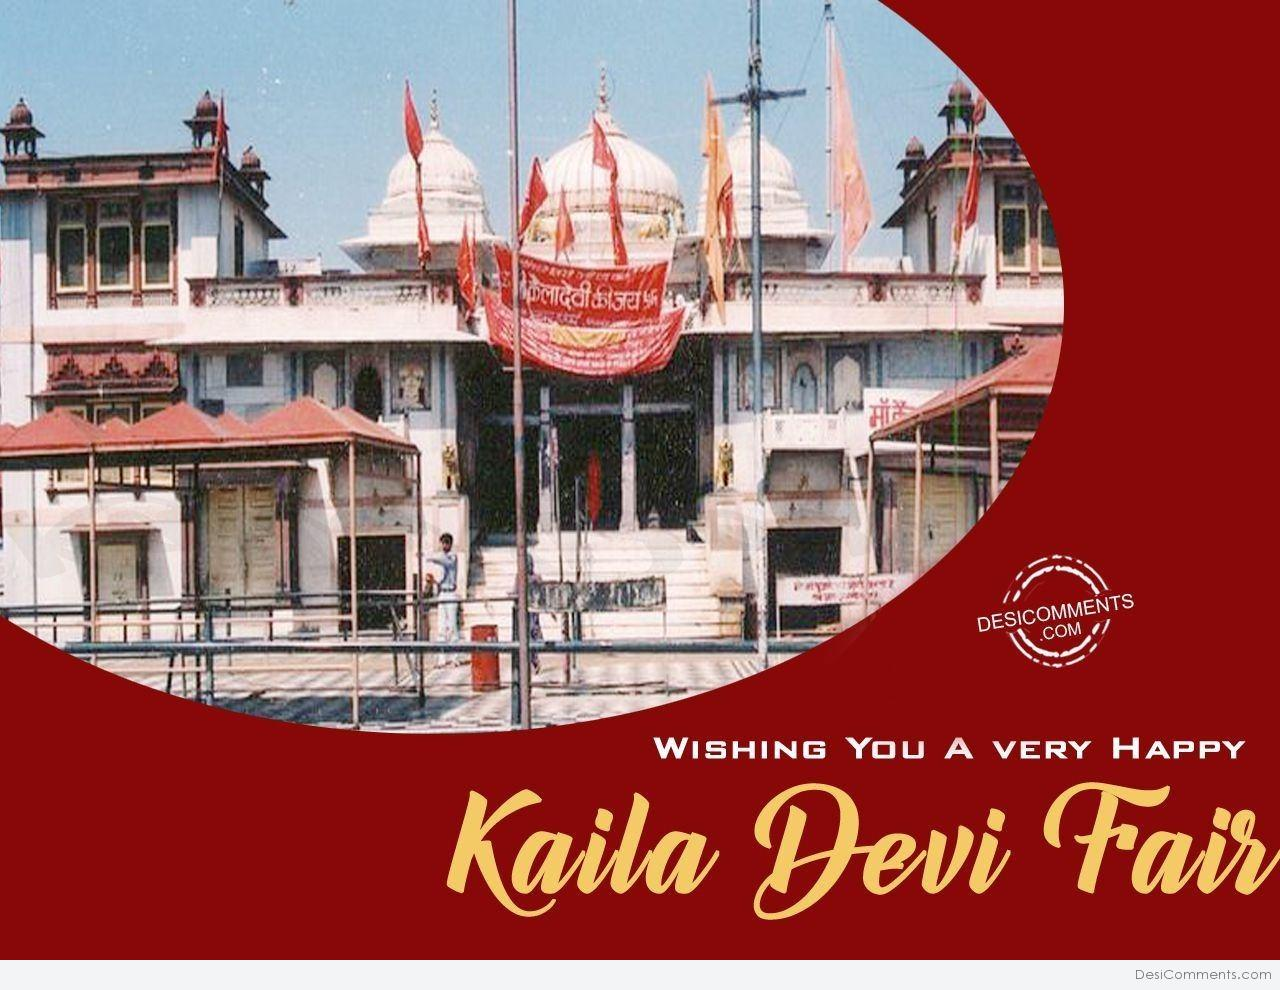 Best Kaila Devi Mela Fair photo gallery for free download